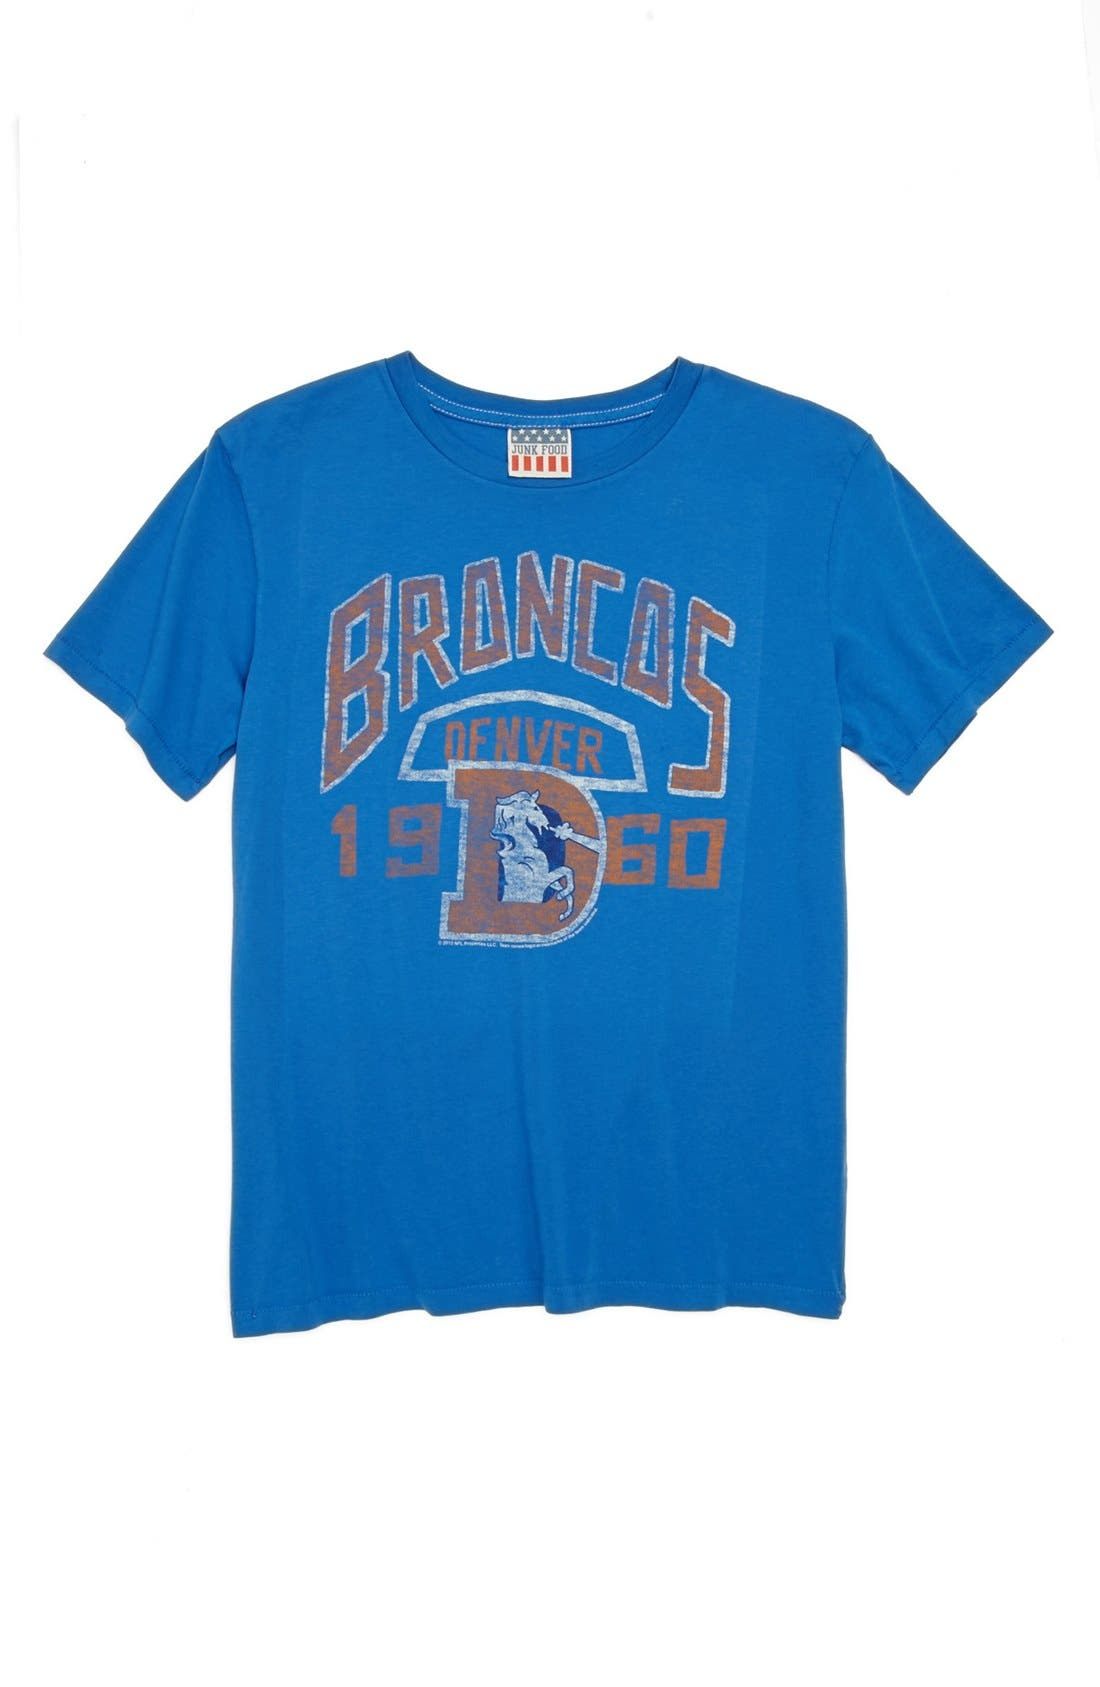 Alternate Image 1 Selected - Junk Food 'Denver Broncos' T-Shirt (Little Boys & Big Boys)